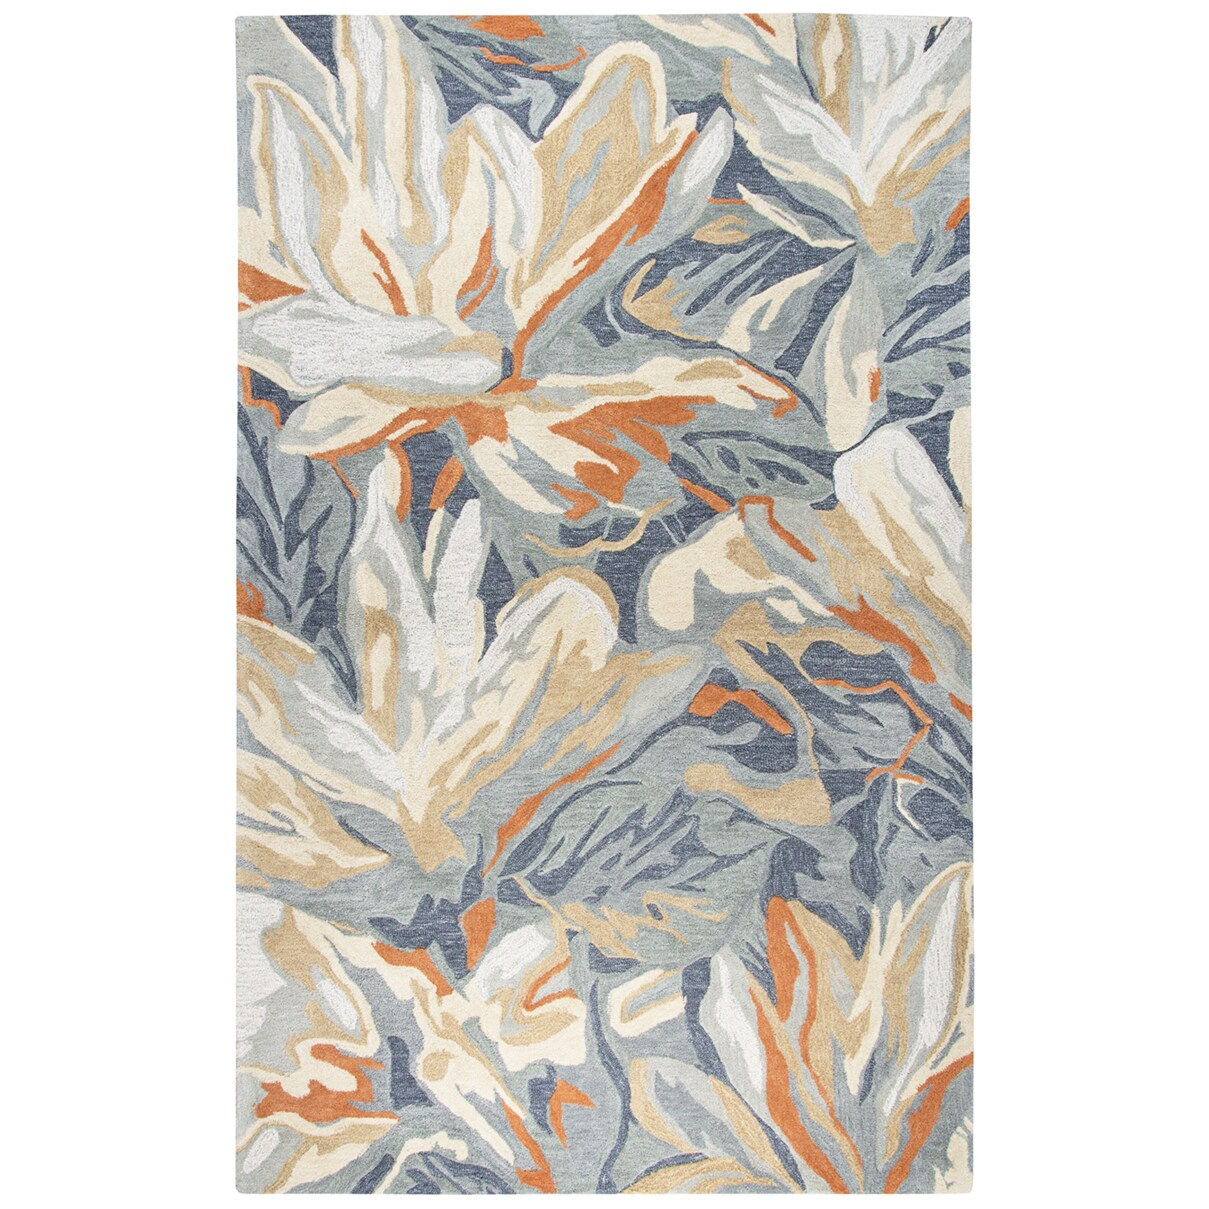 Rizzy Home Mod Blue Abstract Floral Handmade Wool-blend Area Rug (5' X 8')